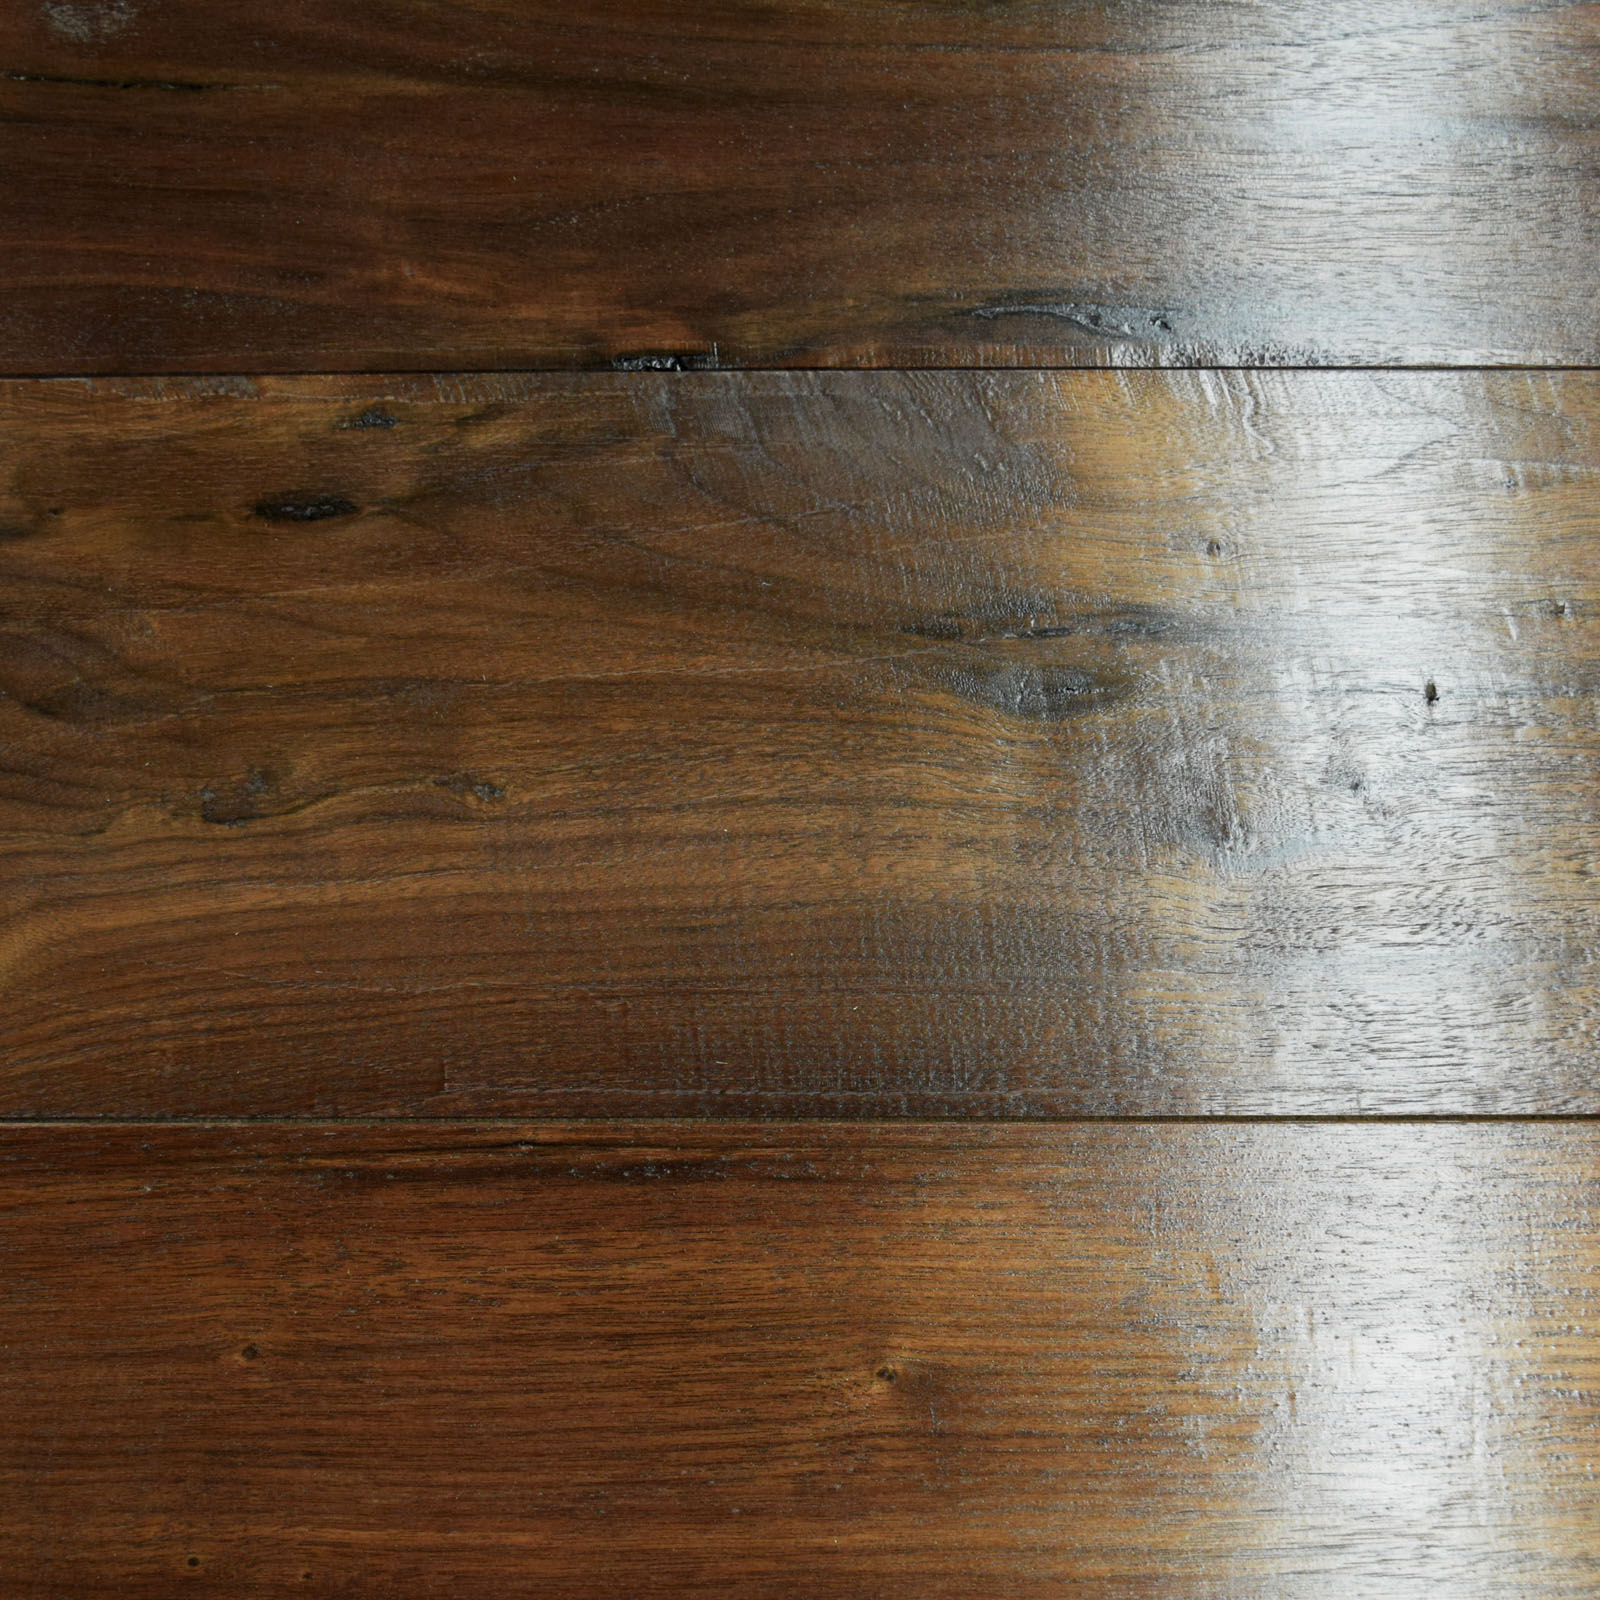 Walnut Handscrape Flooring - Wellborn + Wright